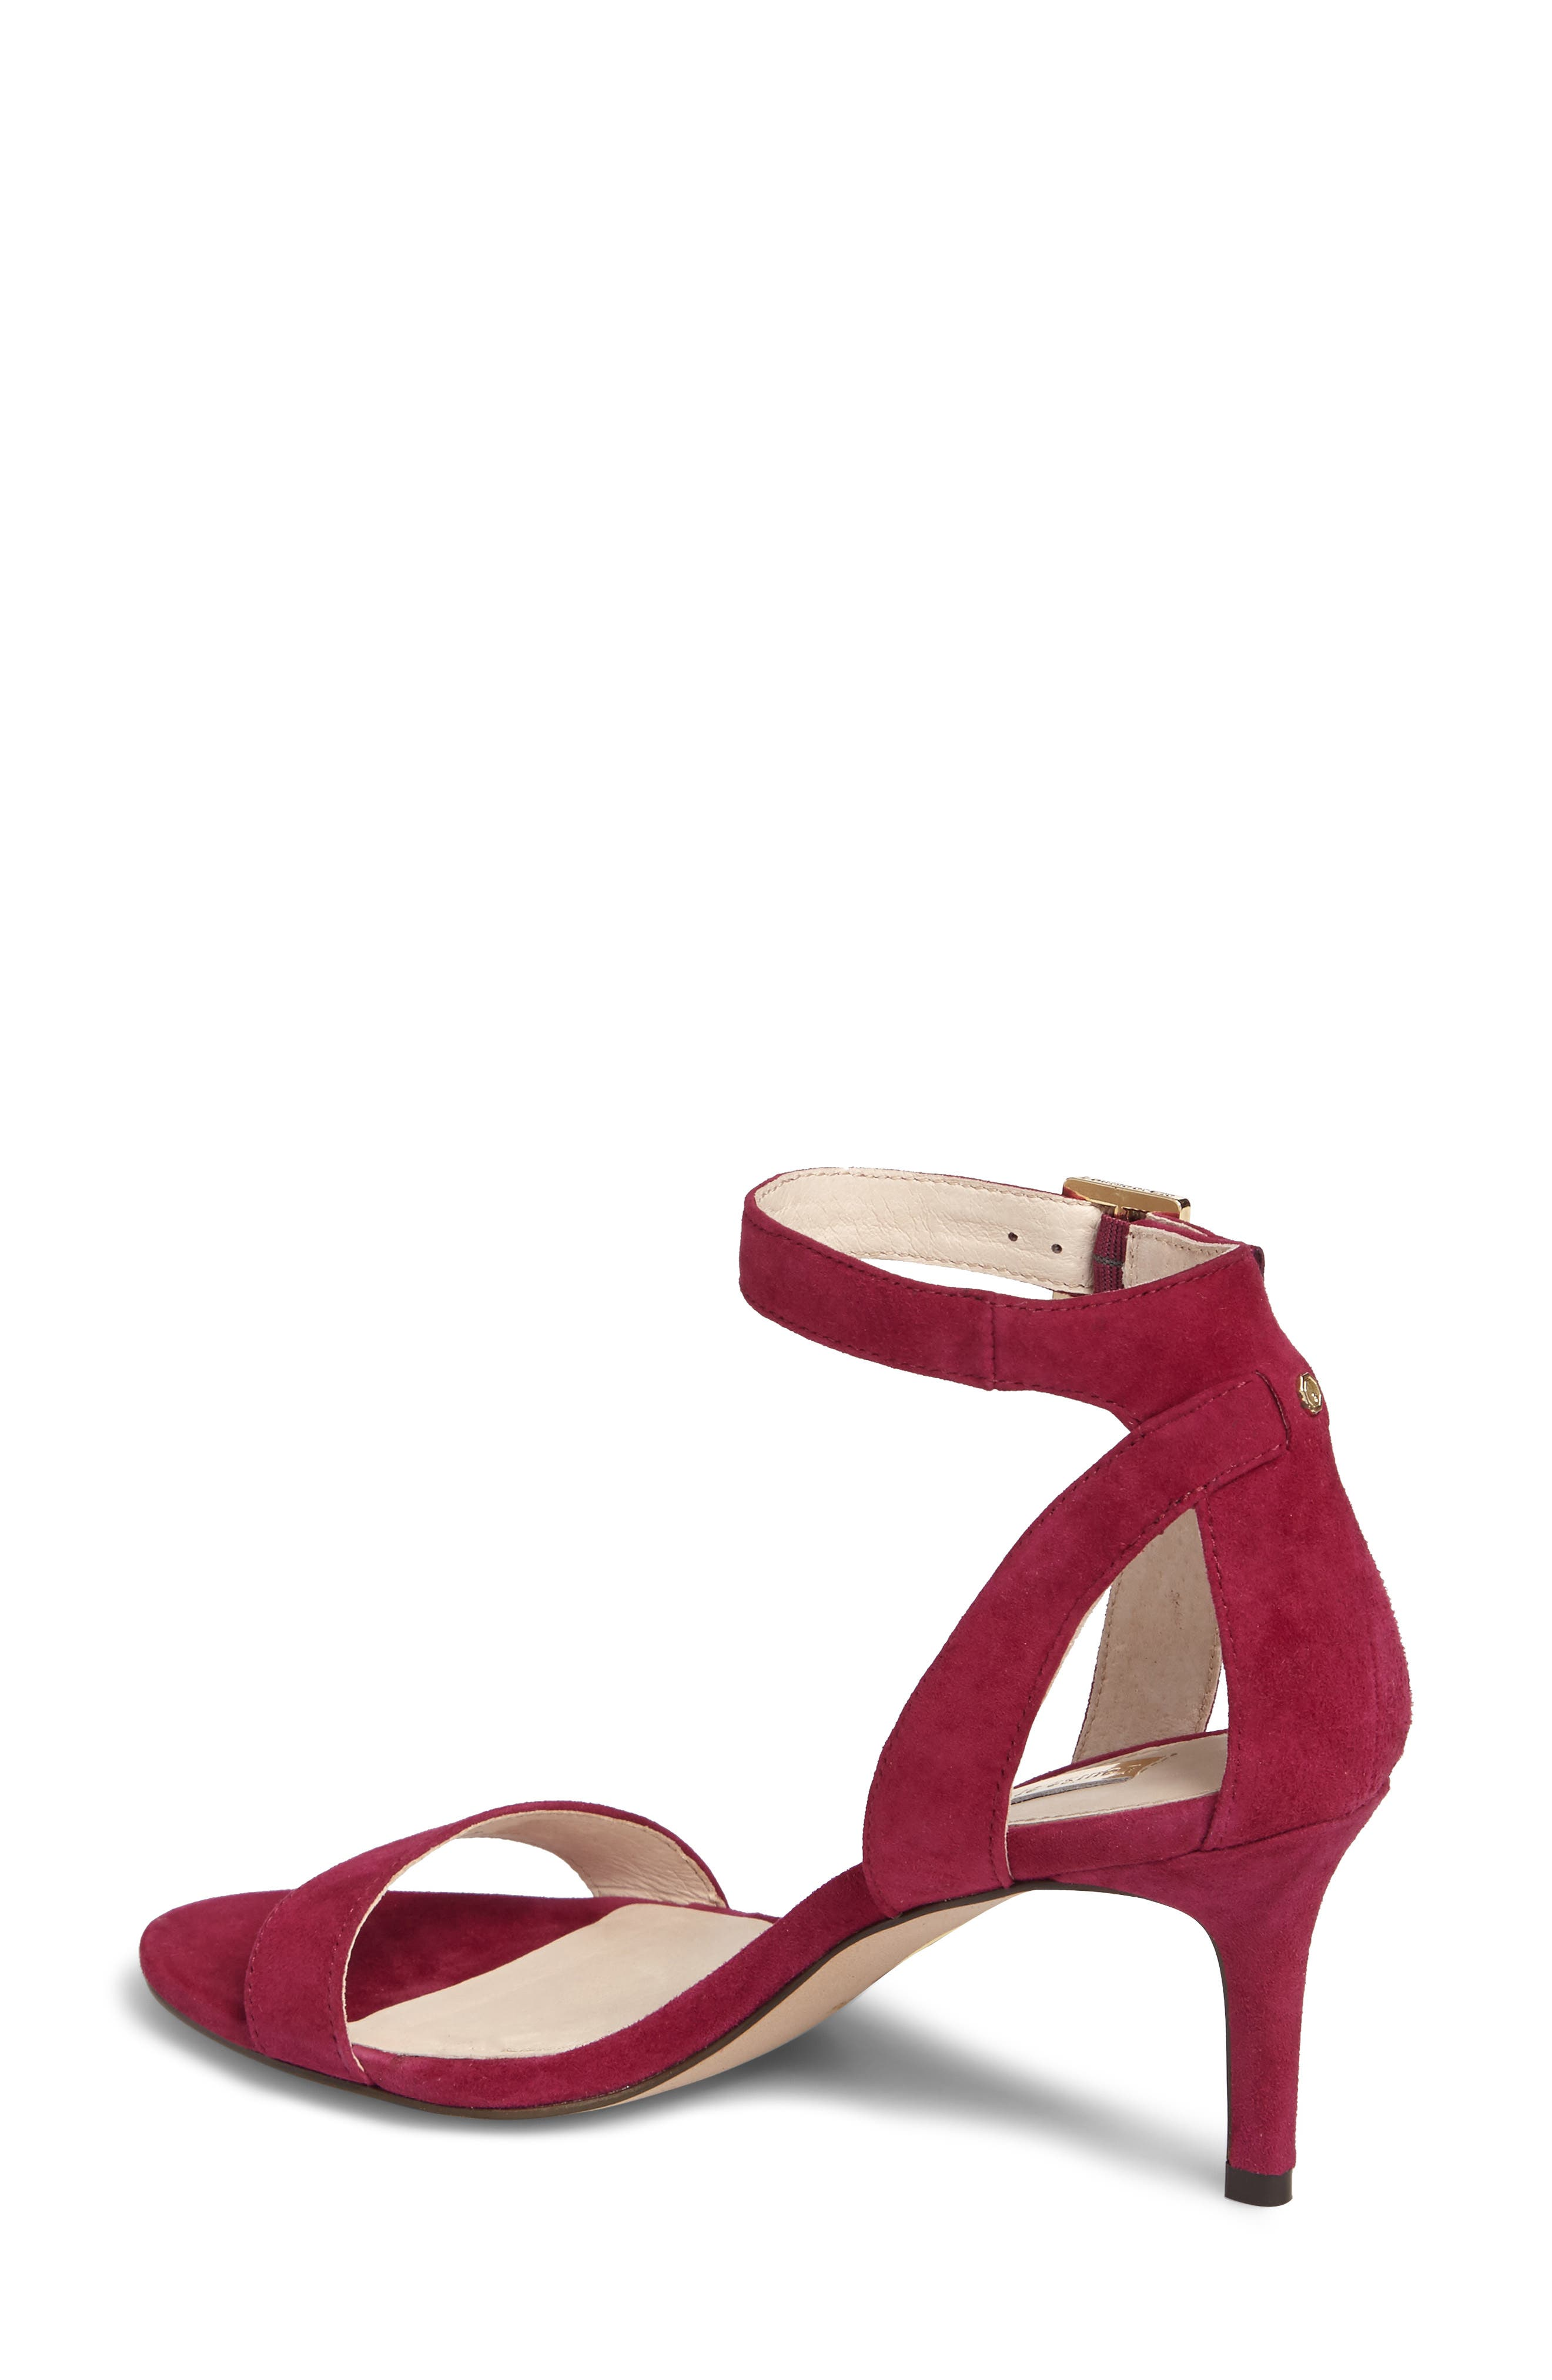 Alternate Image 2  - Louise et Cie 'Hyacinth' Ankle Strap Sandal (Women)